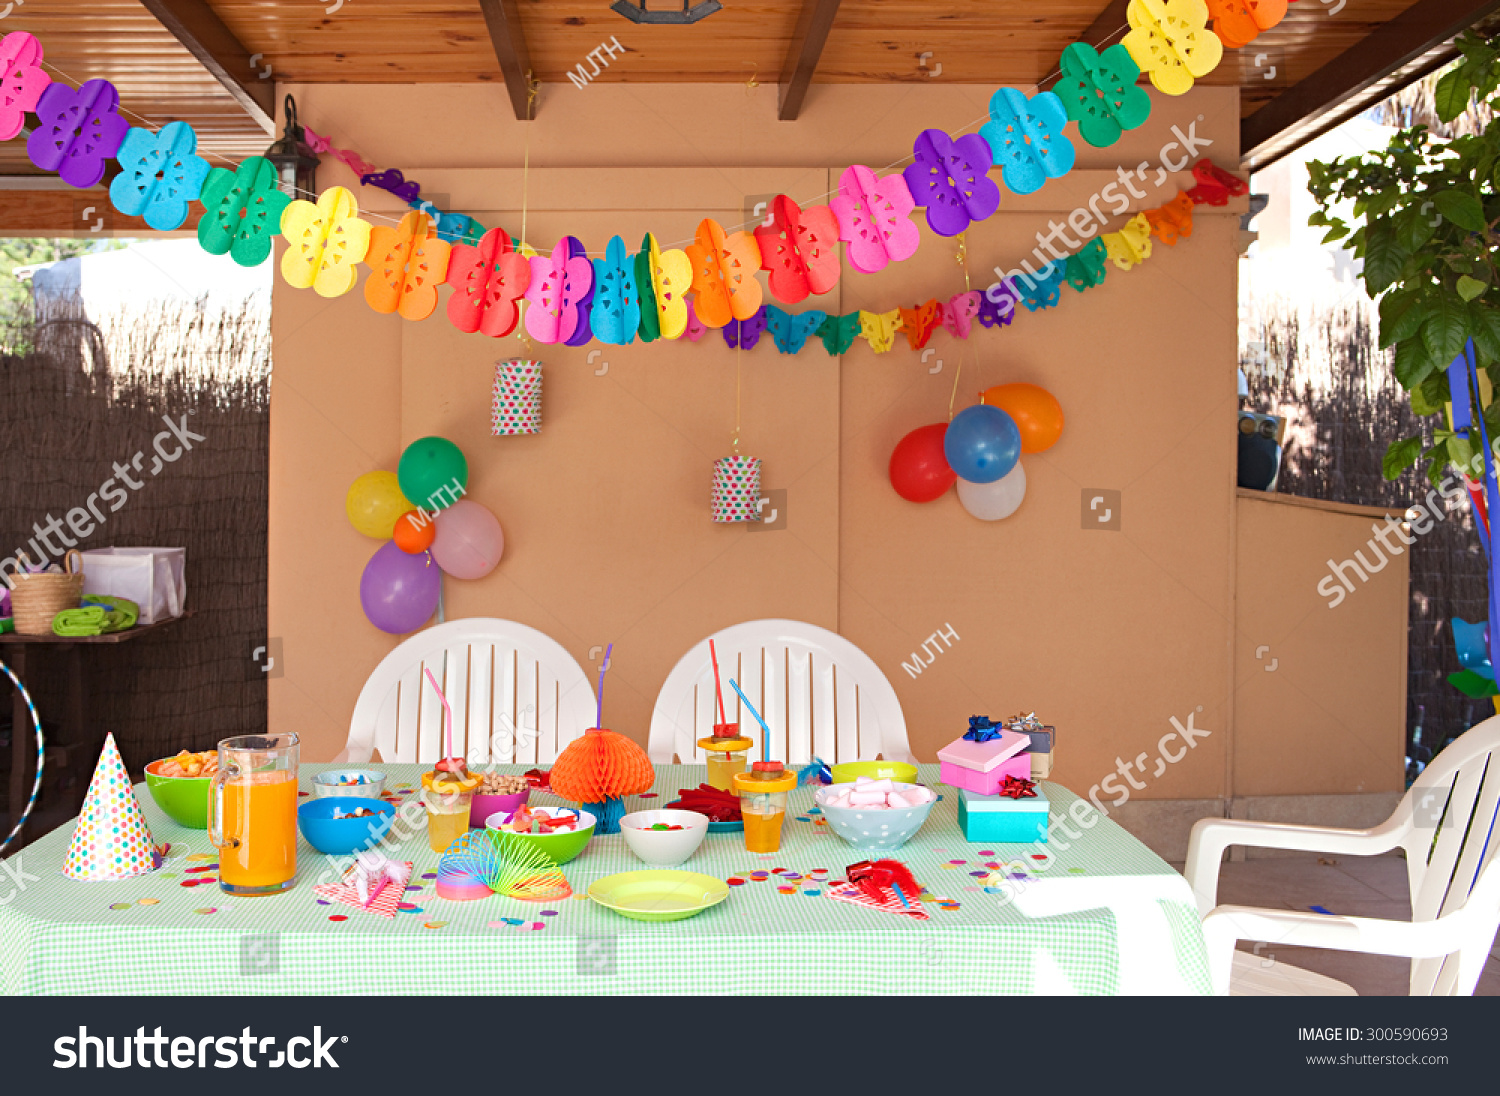 Birthday table decorations at home - Still Life View Of A Children Birthday Party Table Decorated With Fun And Colorful Deco And